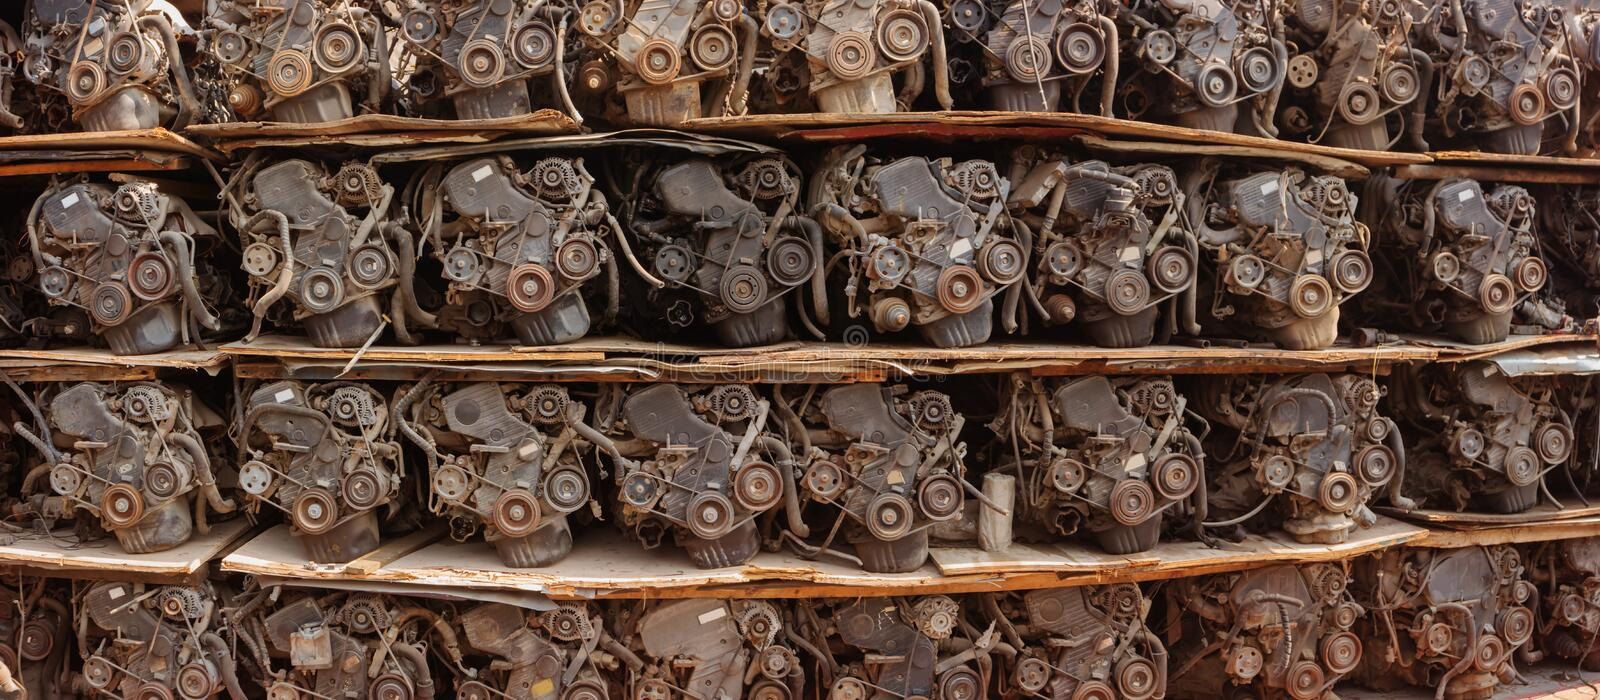 Scrapped Automotive Engines for Sale in a Warehouse. Dozens of salvage car engines, sacked on improvised plywood palets, for sale in an enormous warehouse stock image